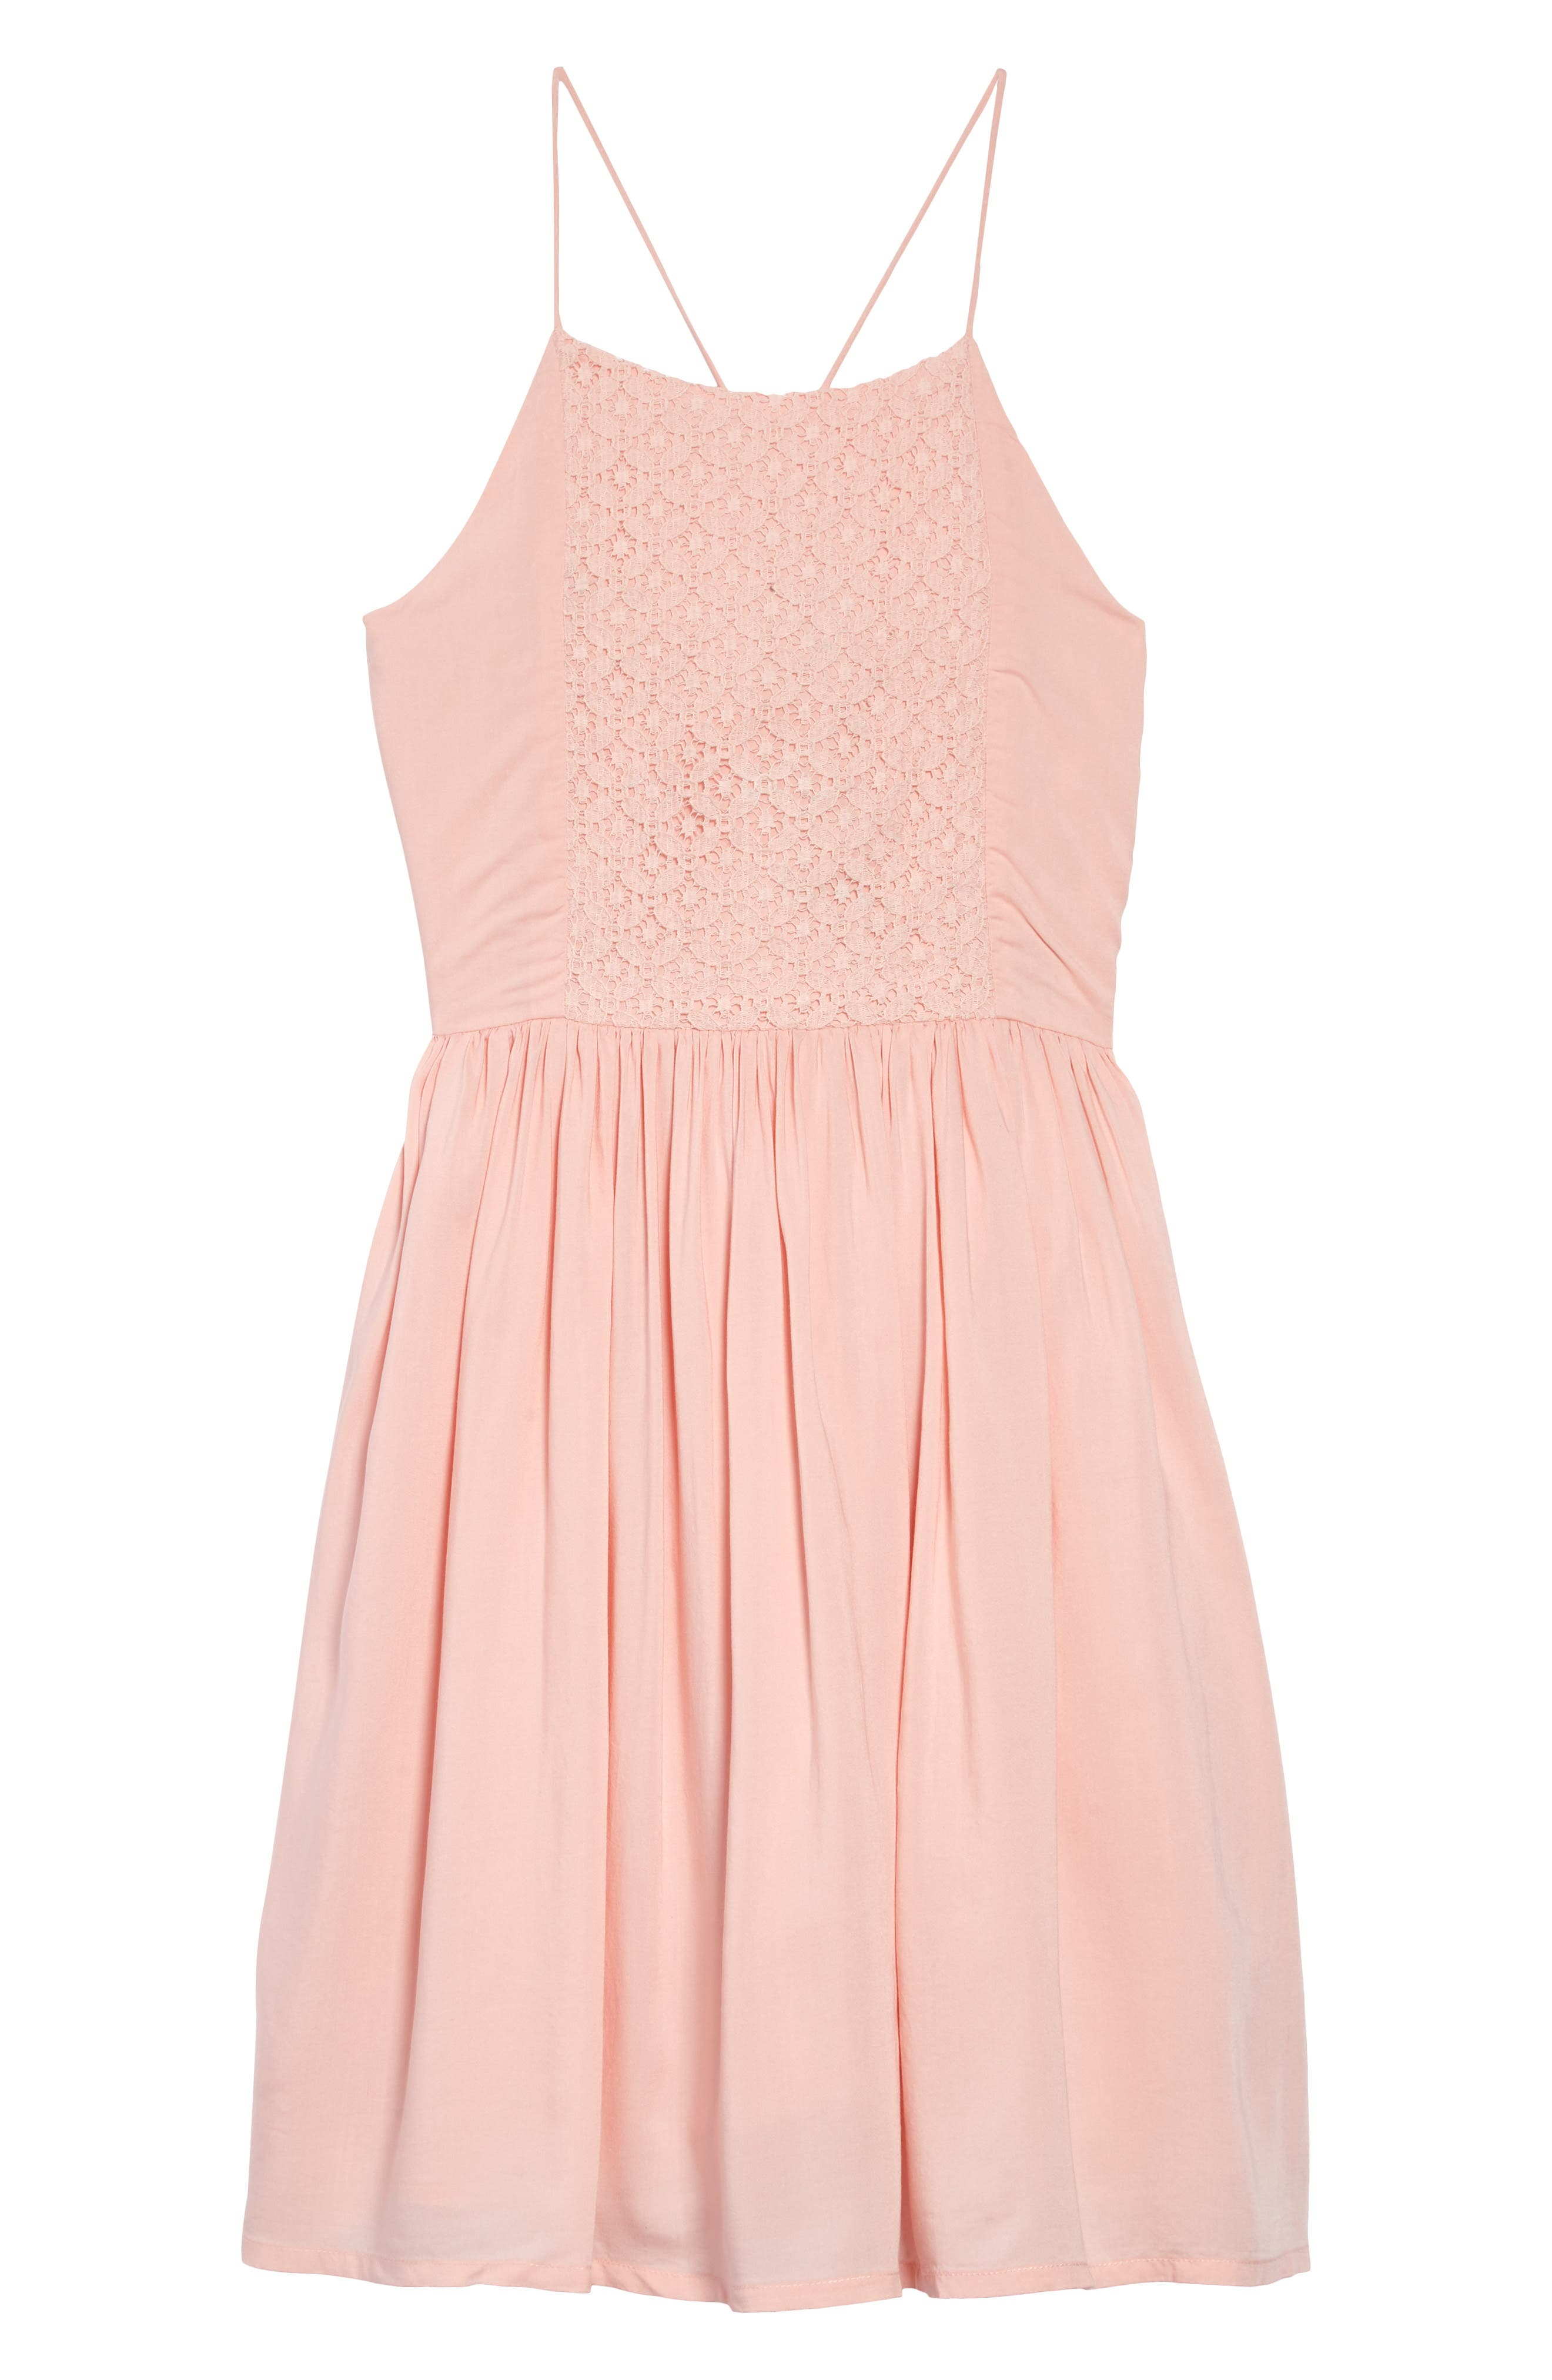 TUCKER + TATE Dreamin' Lace Inset Sundress, Main, color, PINK